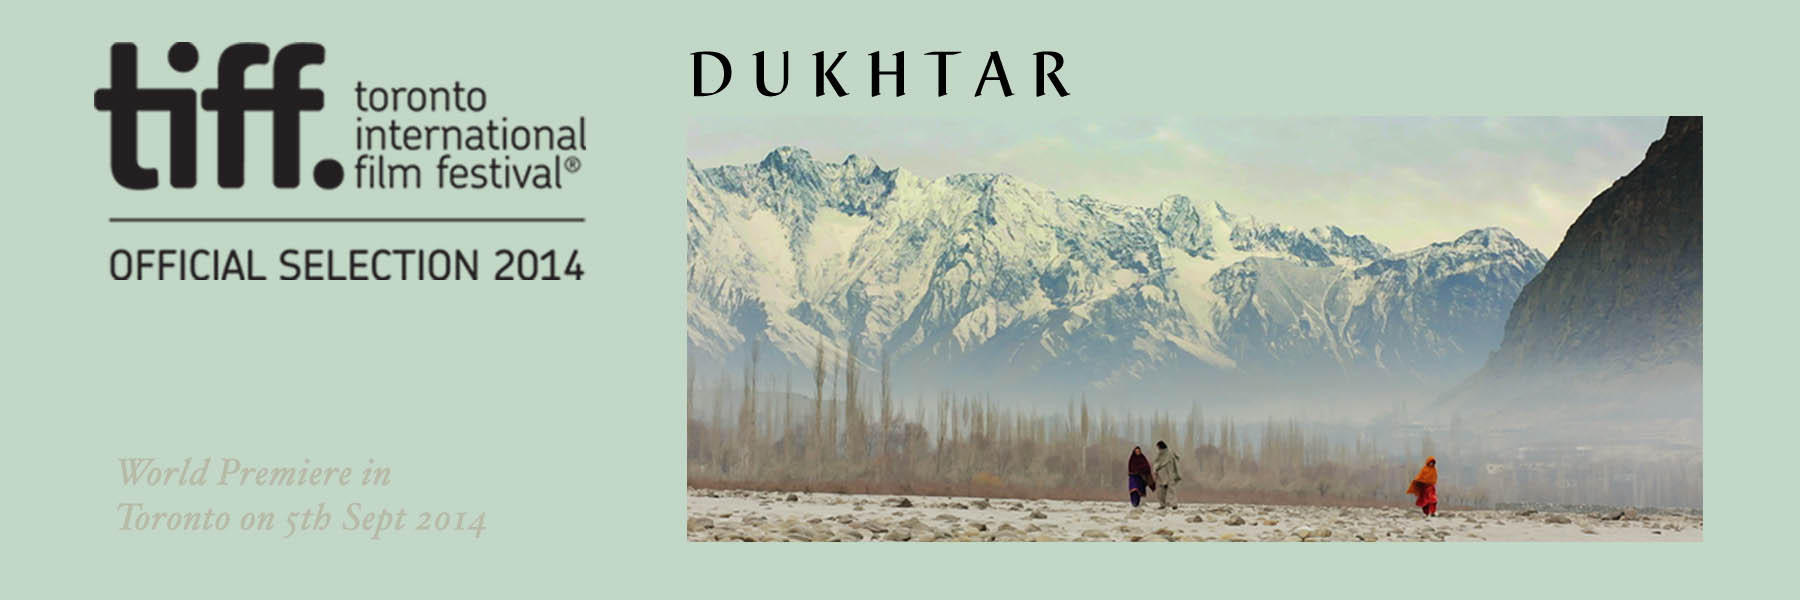 Dukhtar screening on Toronto International Film Festival